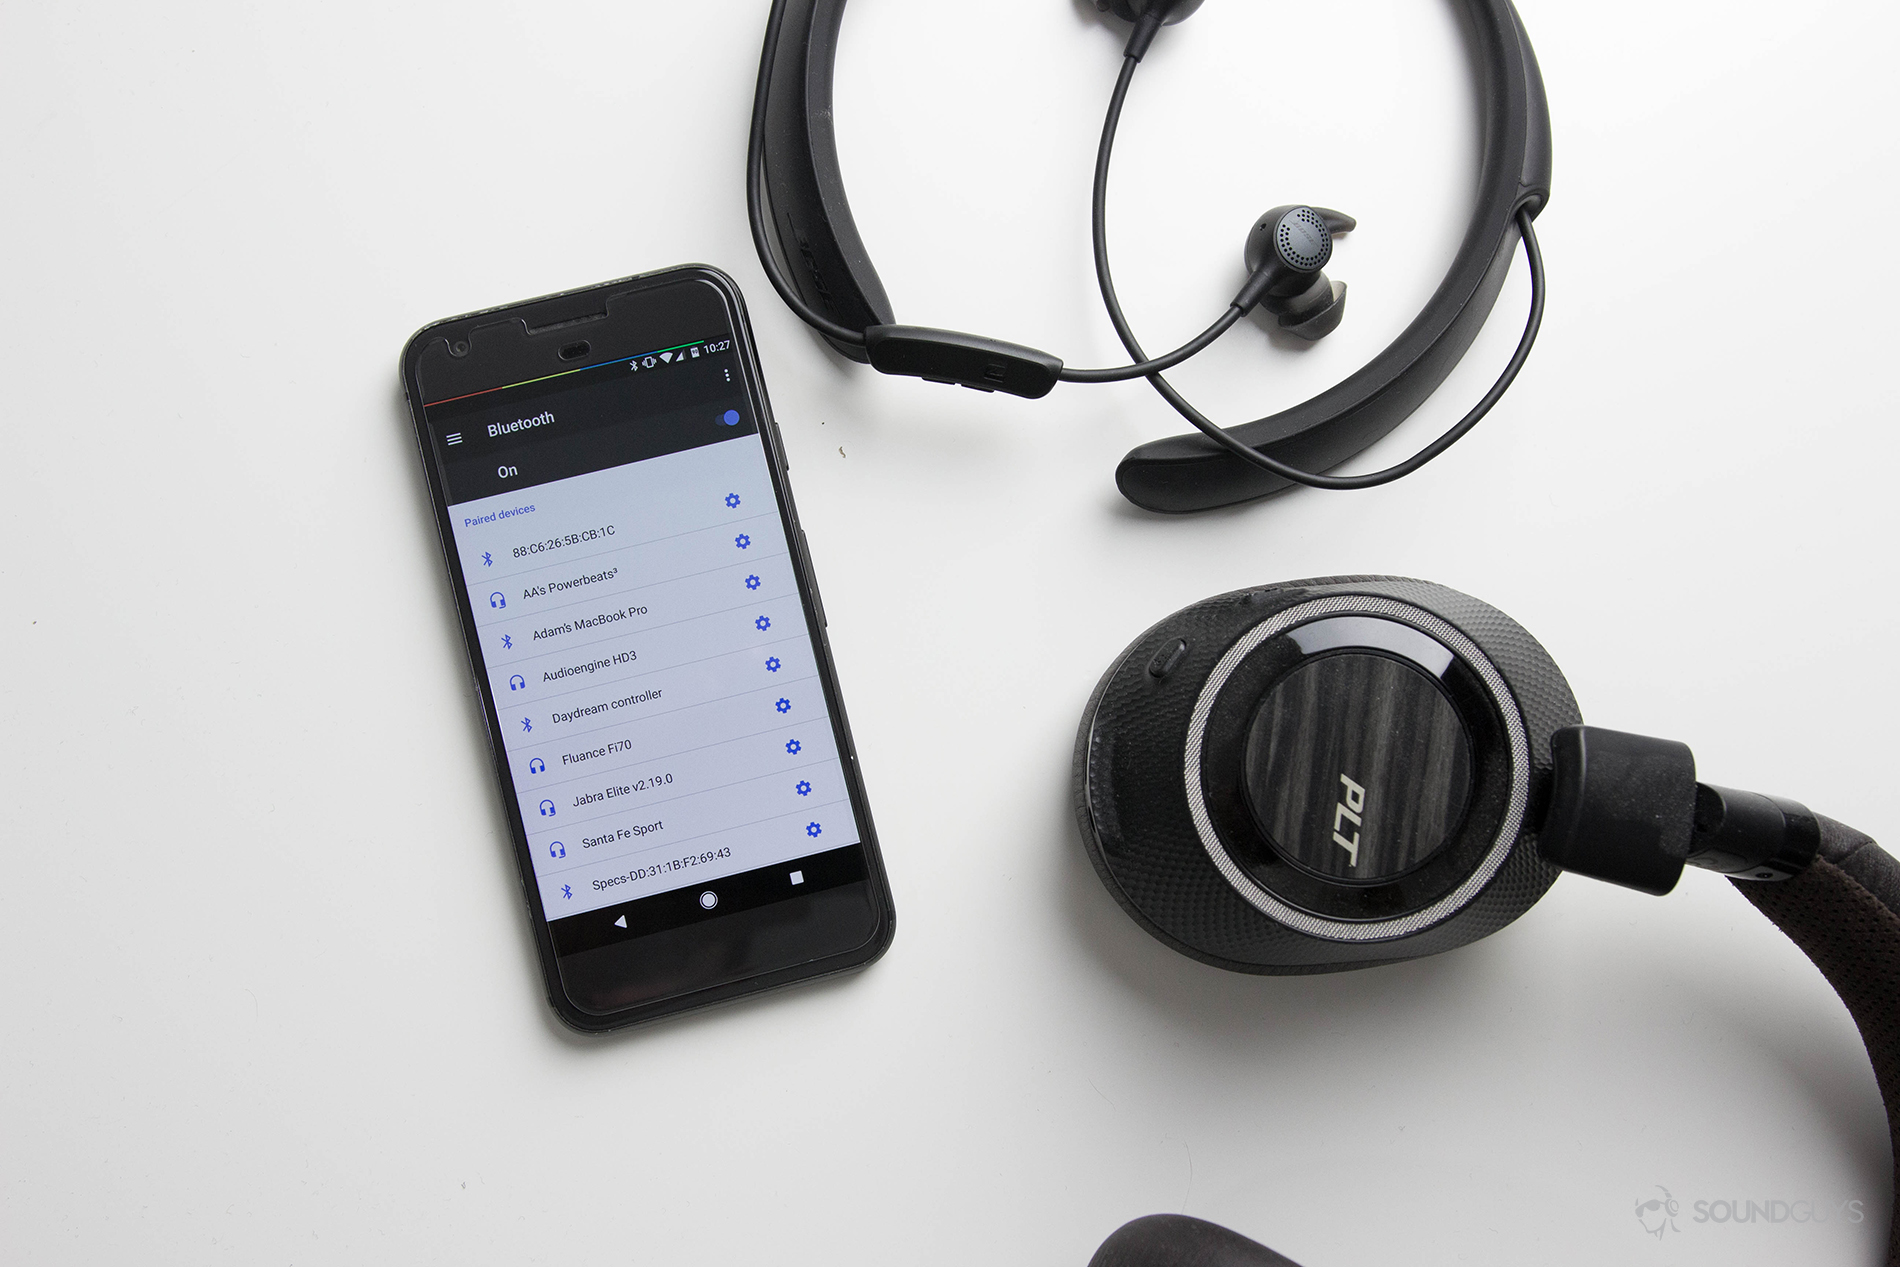 5 Reasons Not To Buy Bluetooth Headphones Soundguys